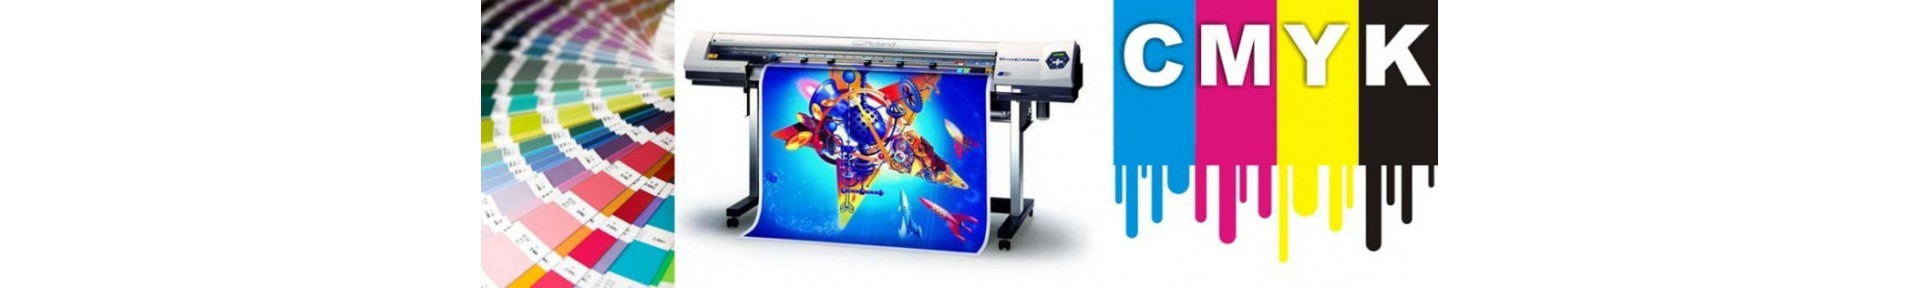 Full color image printing